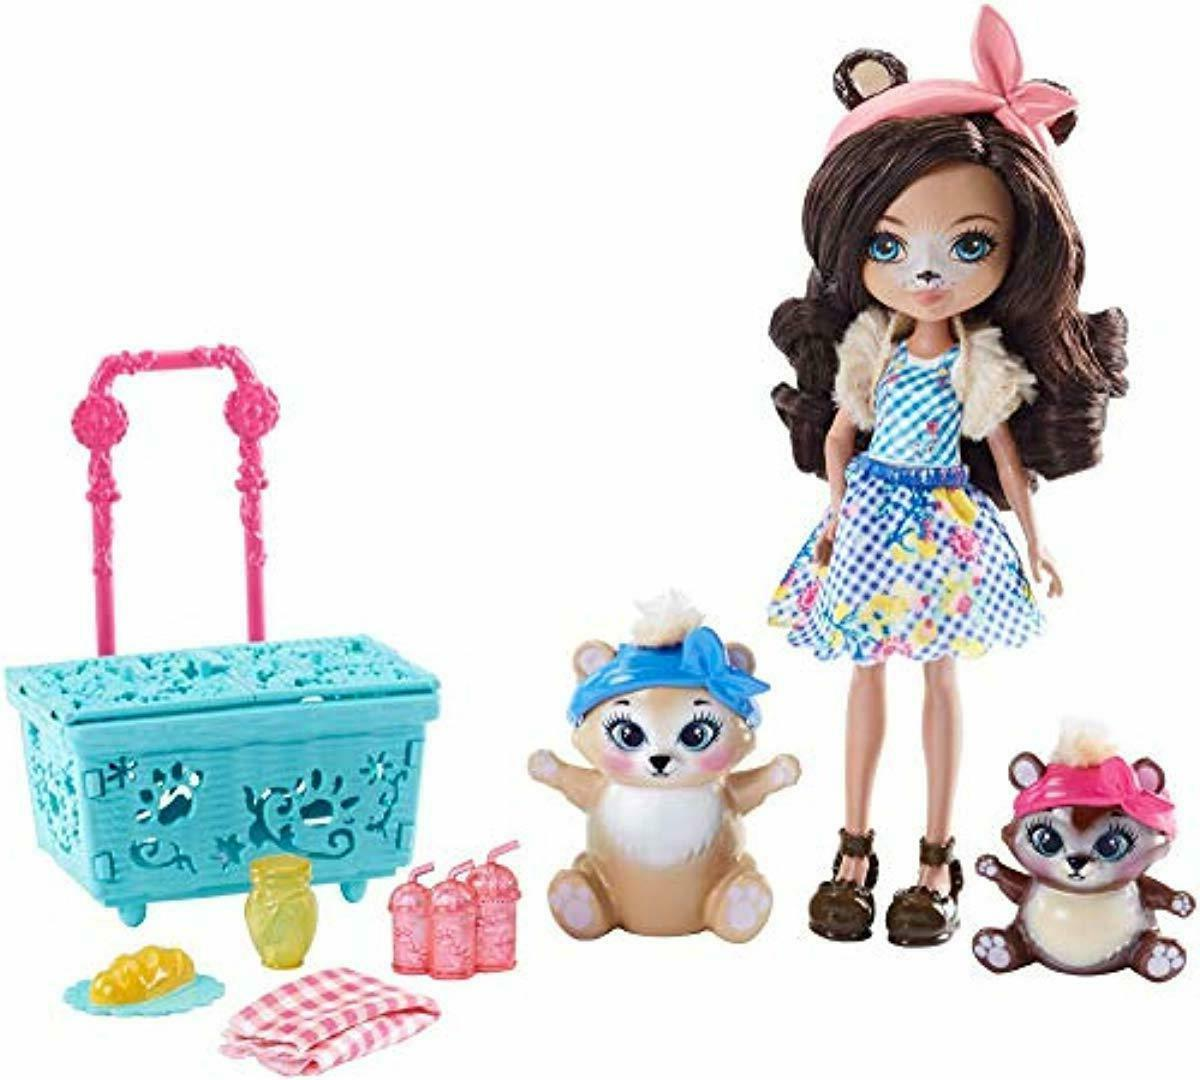 toys for girls kids picnic doll paws